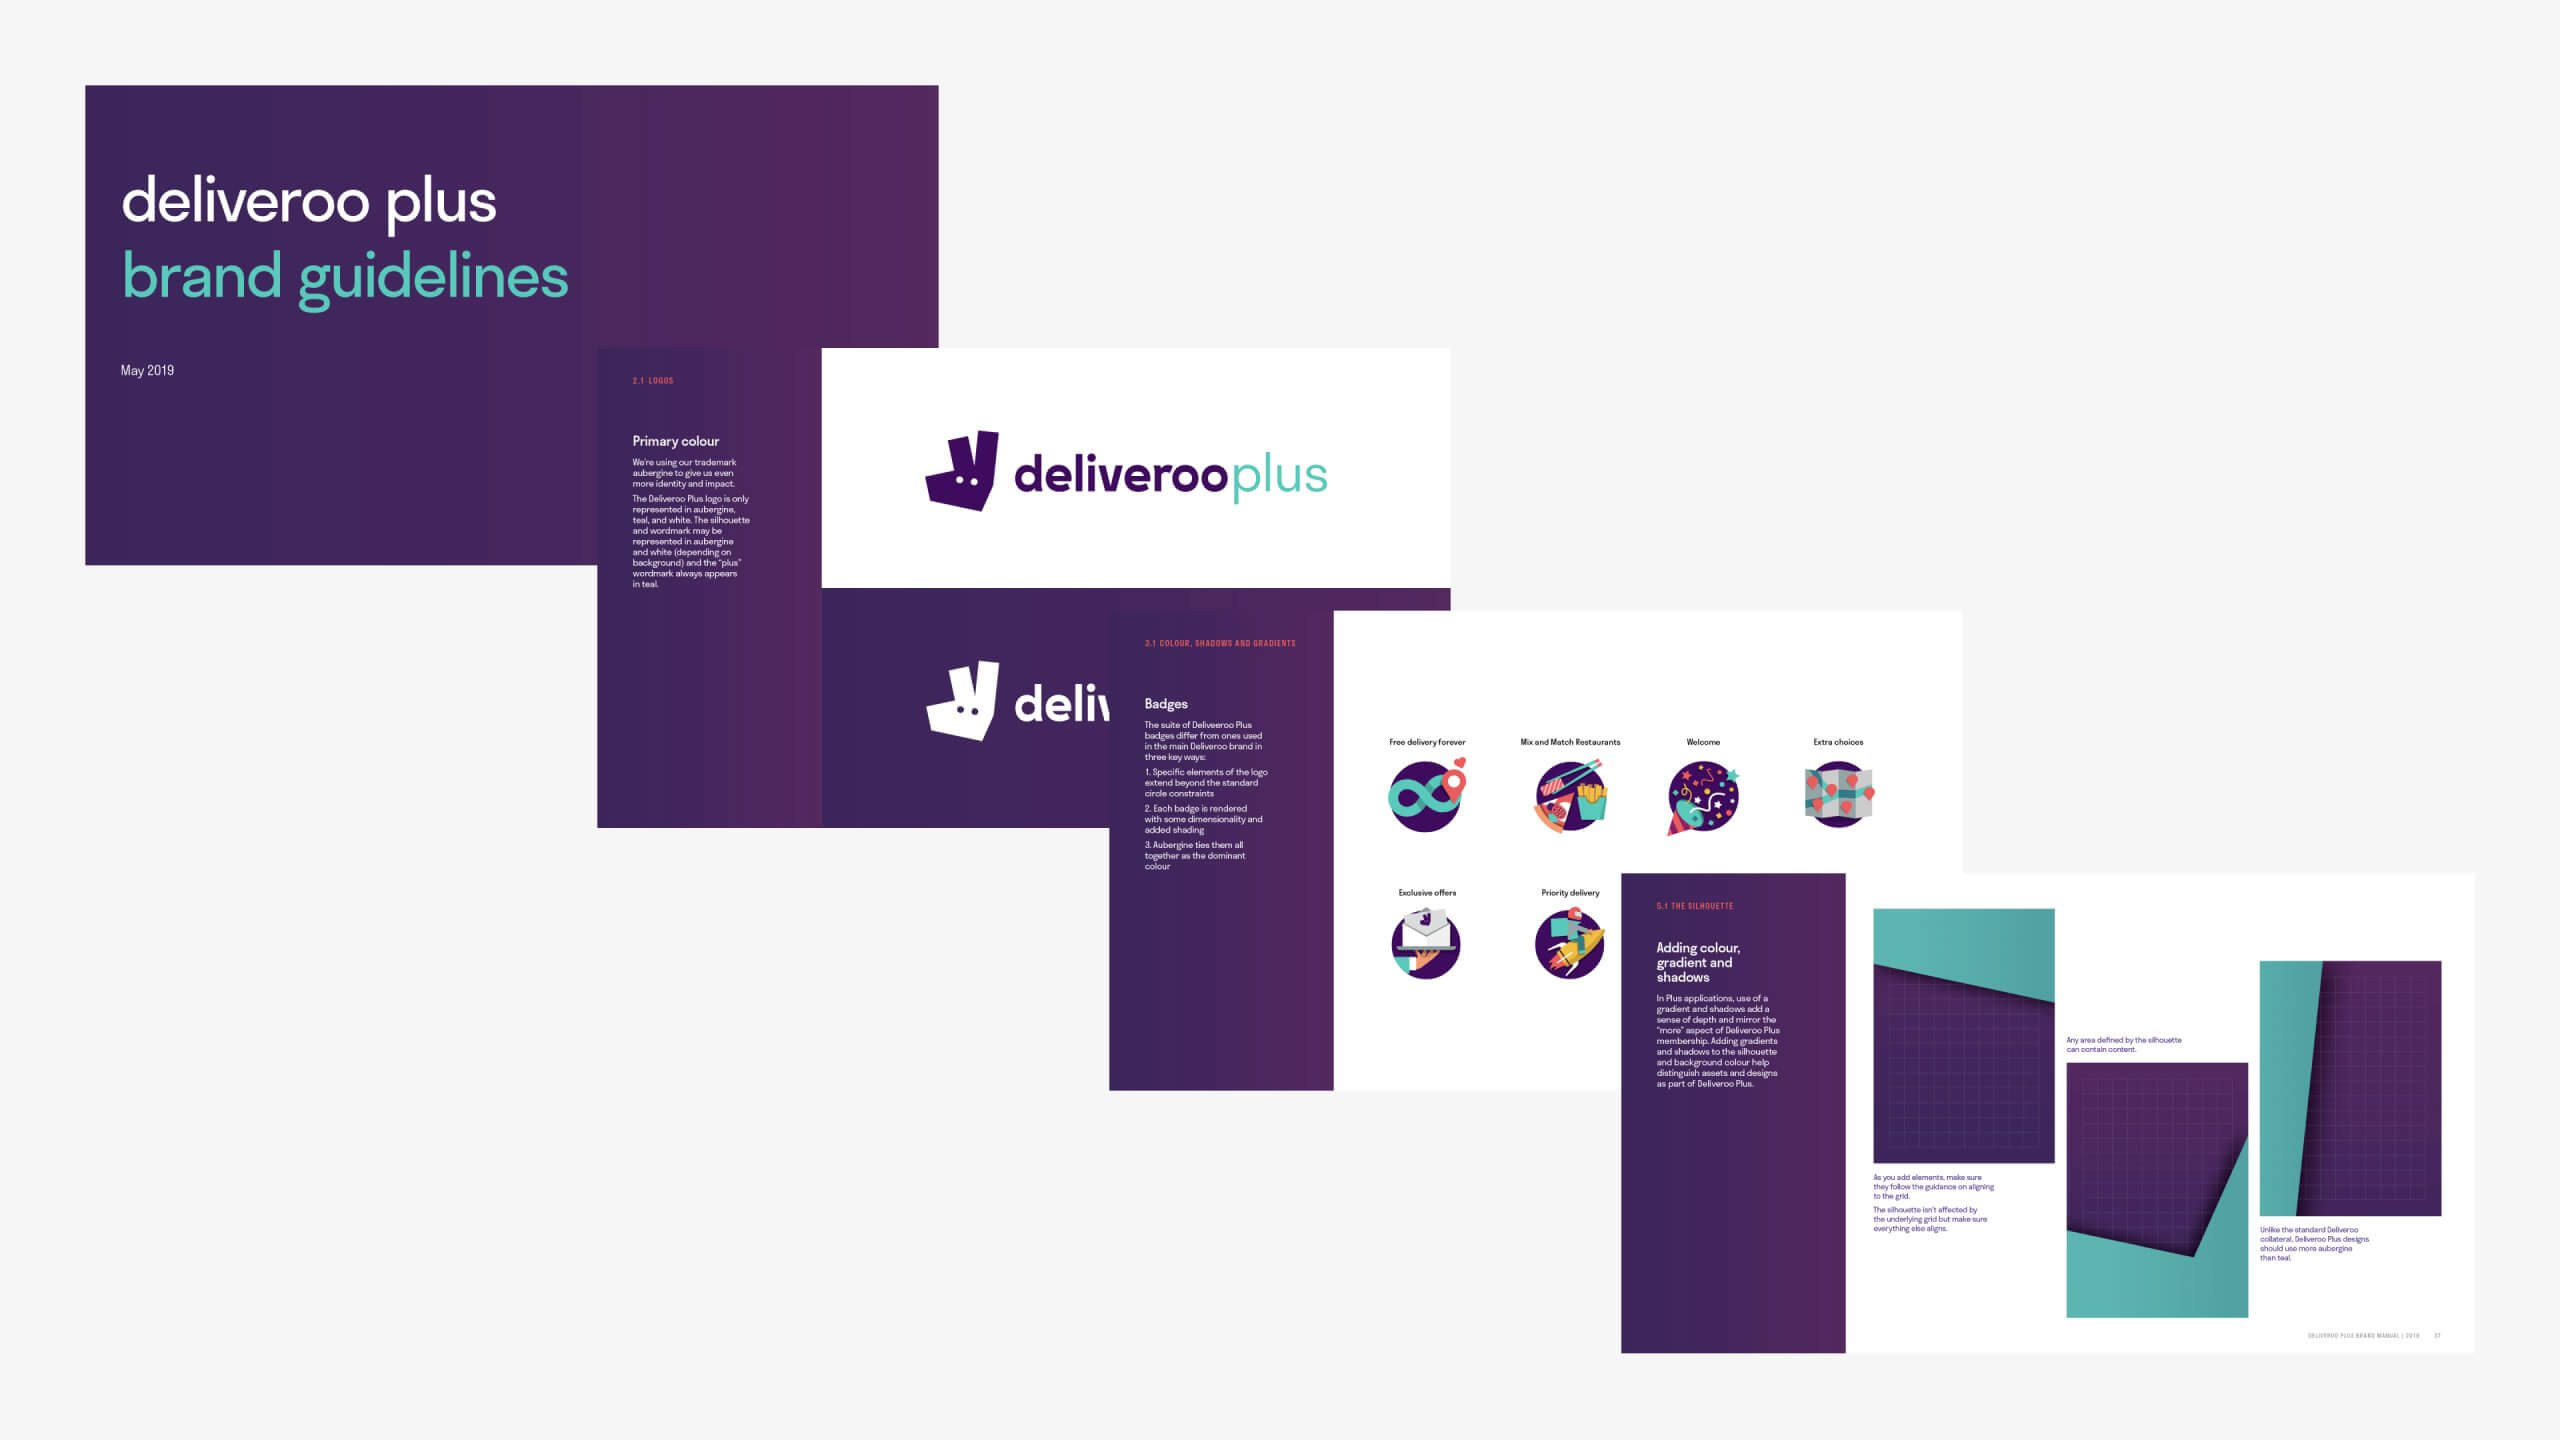 Deliveroo Plus brand guidelines